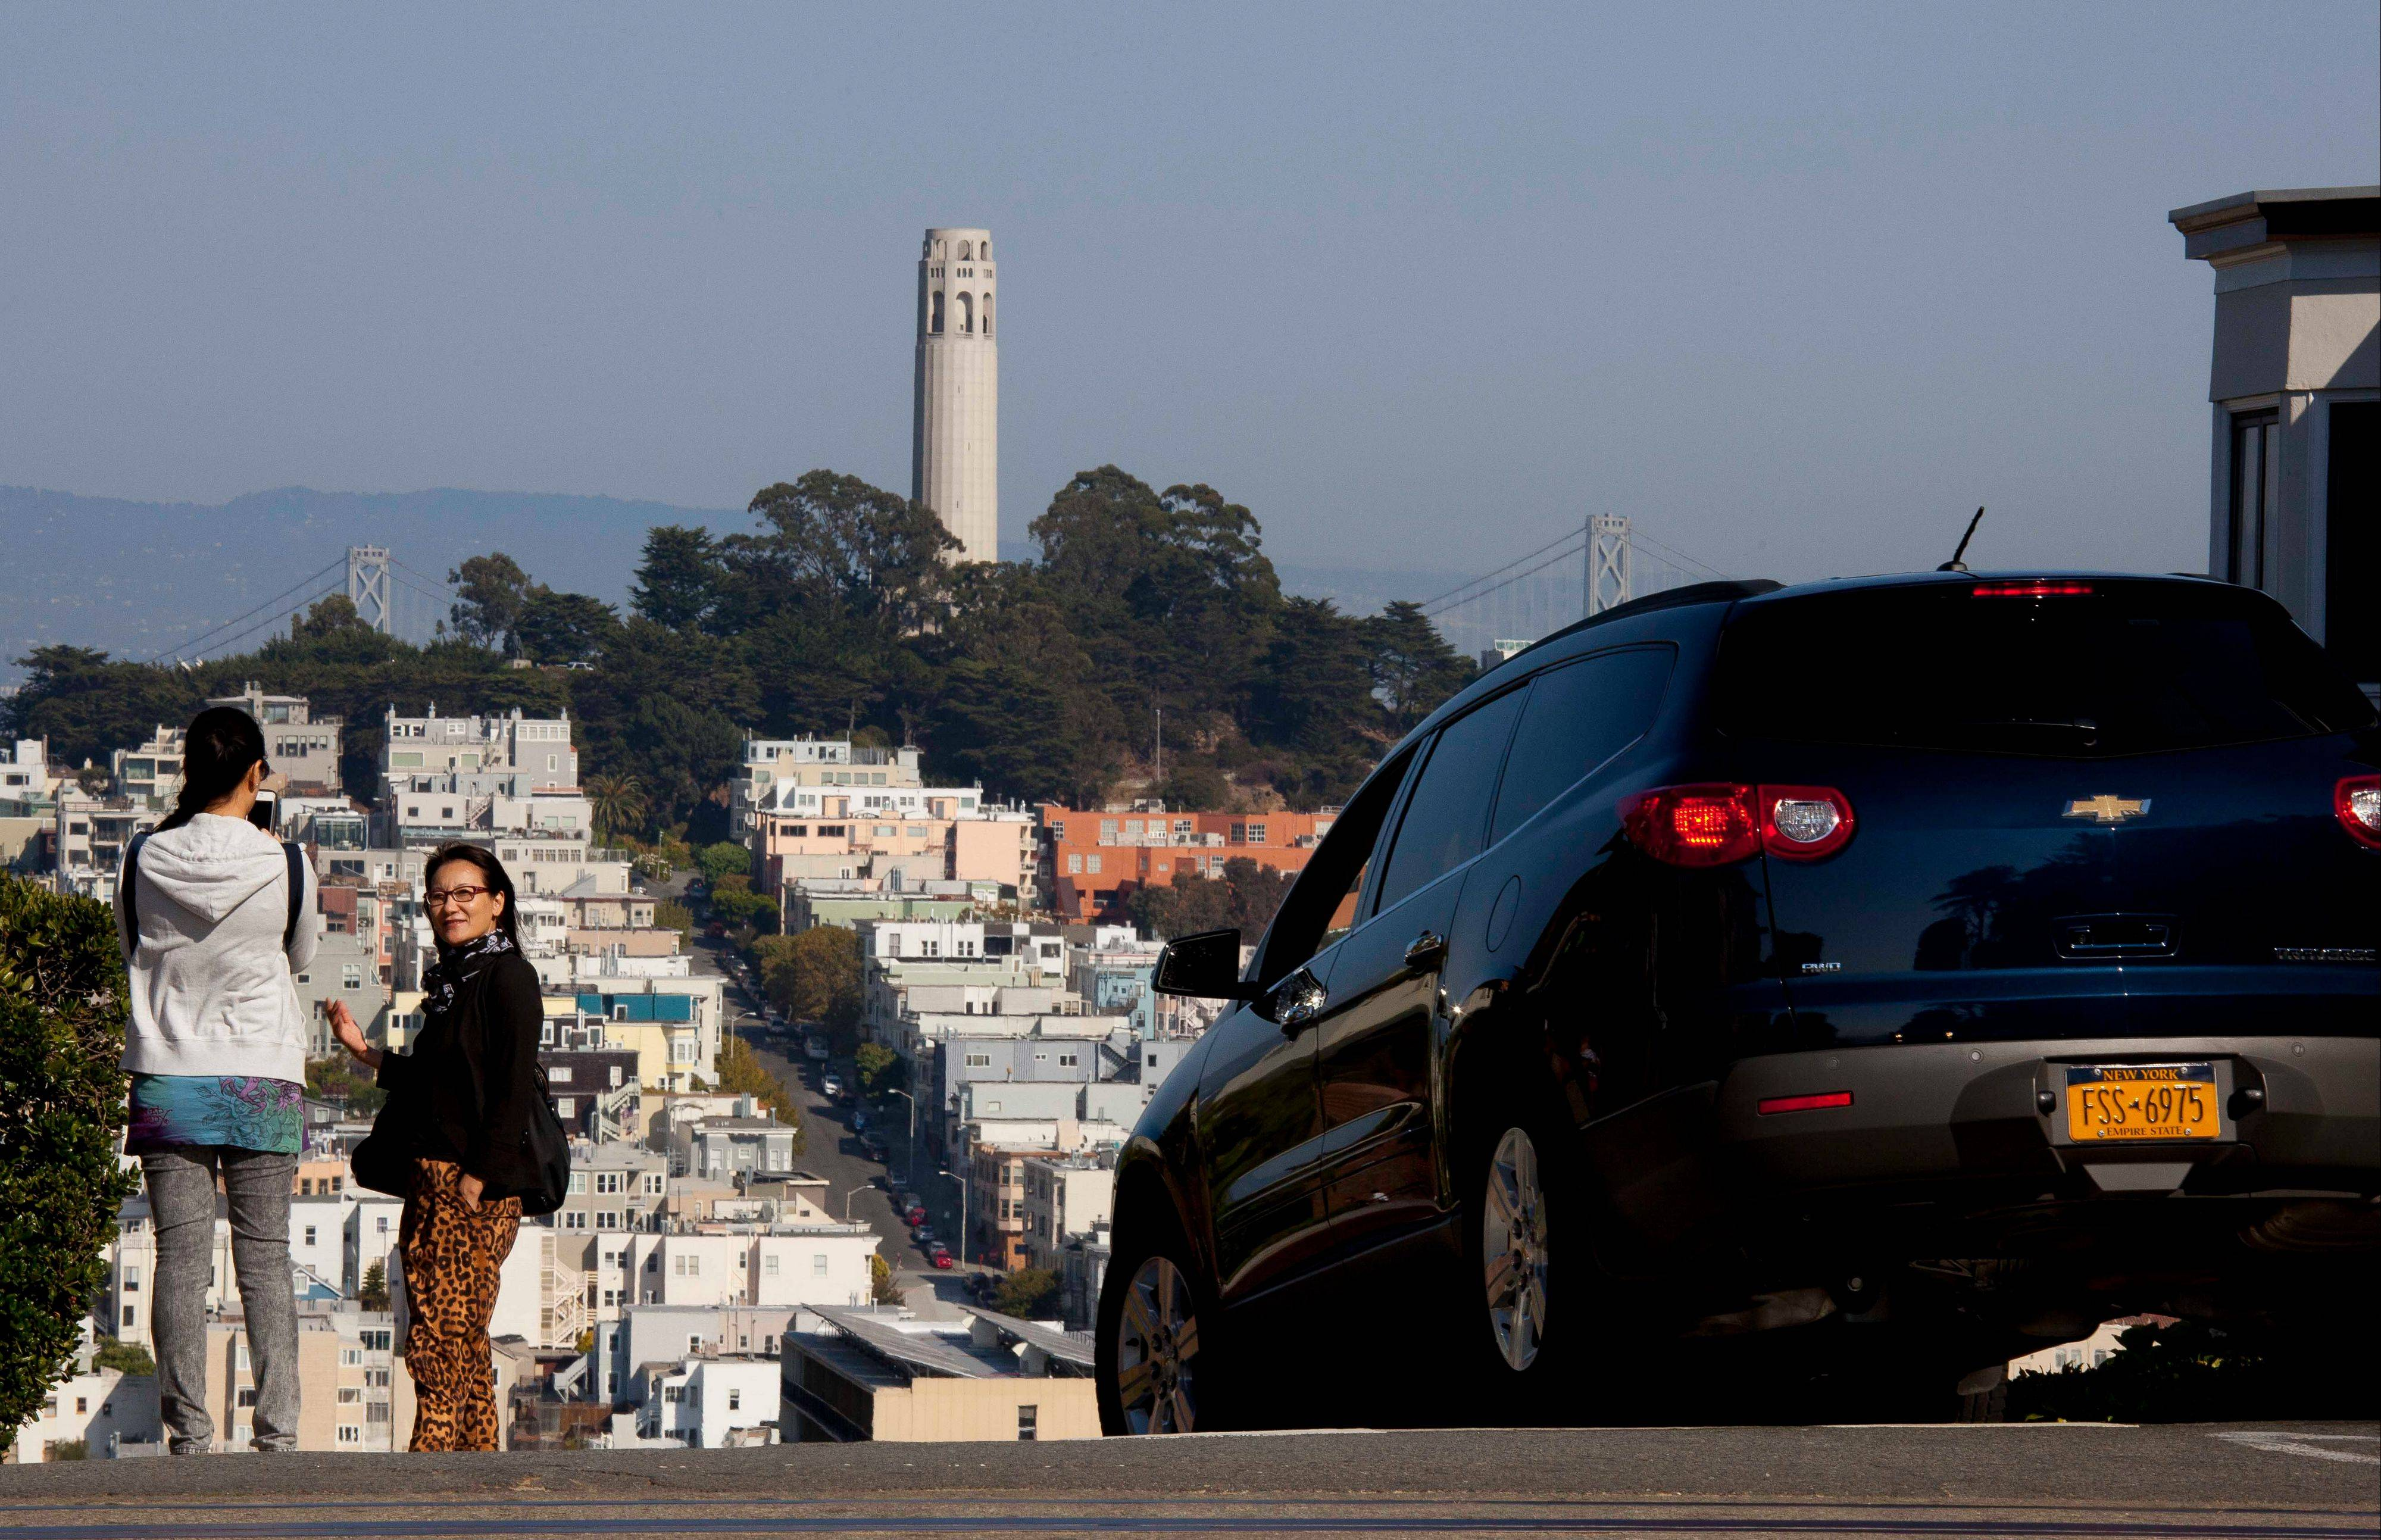 People pose for pictures and a car makes its way down Lombard Street with Coit Tower on Telegraph Hill in the background in San Francisco. The city has a long history as a favorite site for filmmakers and the movie buffs who want to see the spots where their favorite scenes took place.